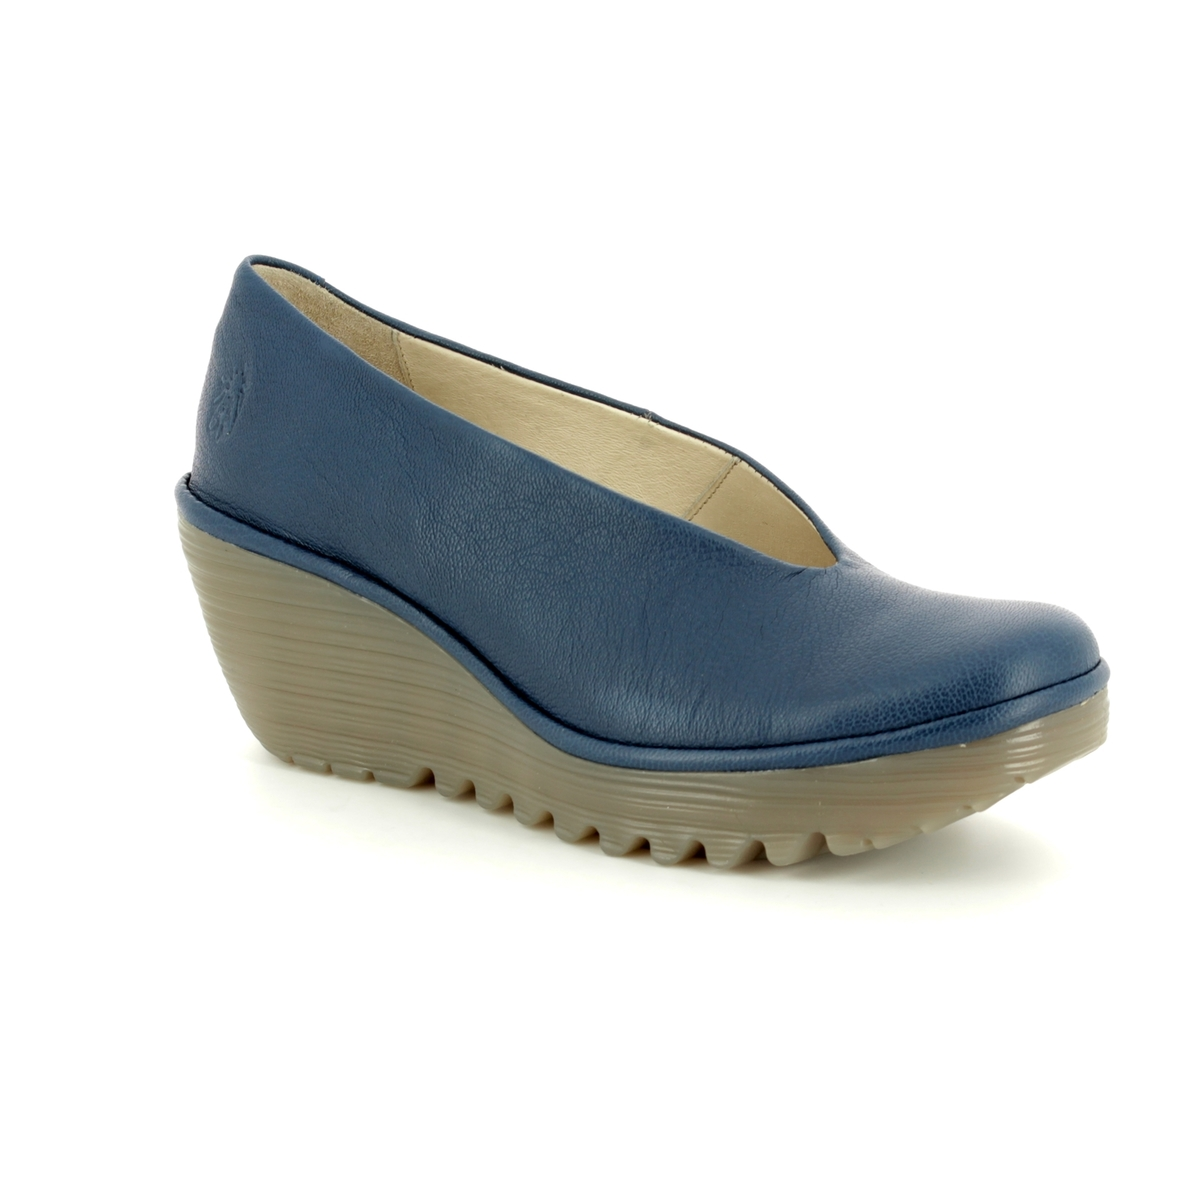 a18bf0de47c Fly London Yaz P500025-202 Navy Wedge Shoes